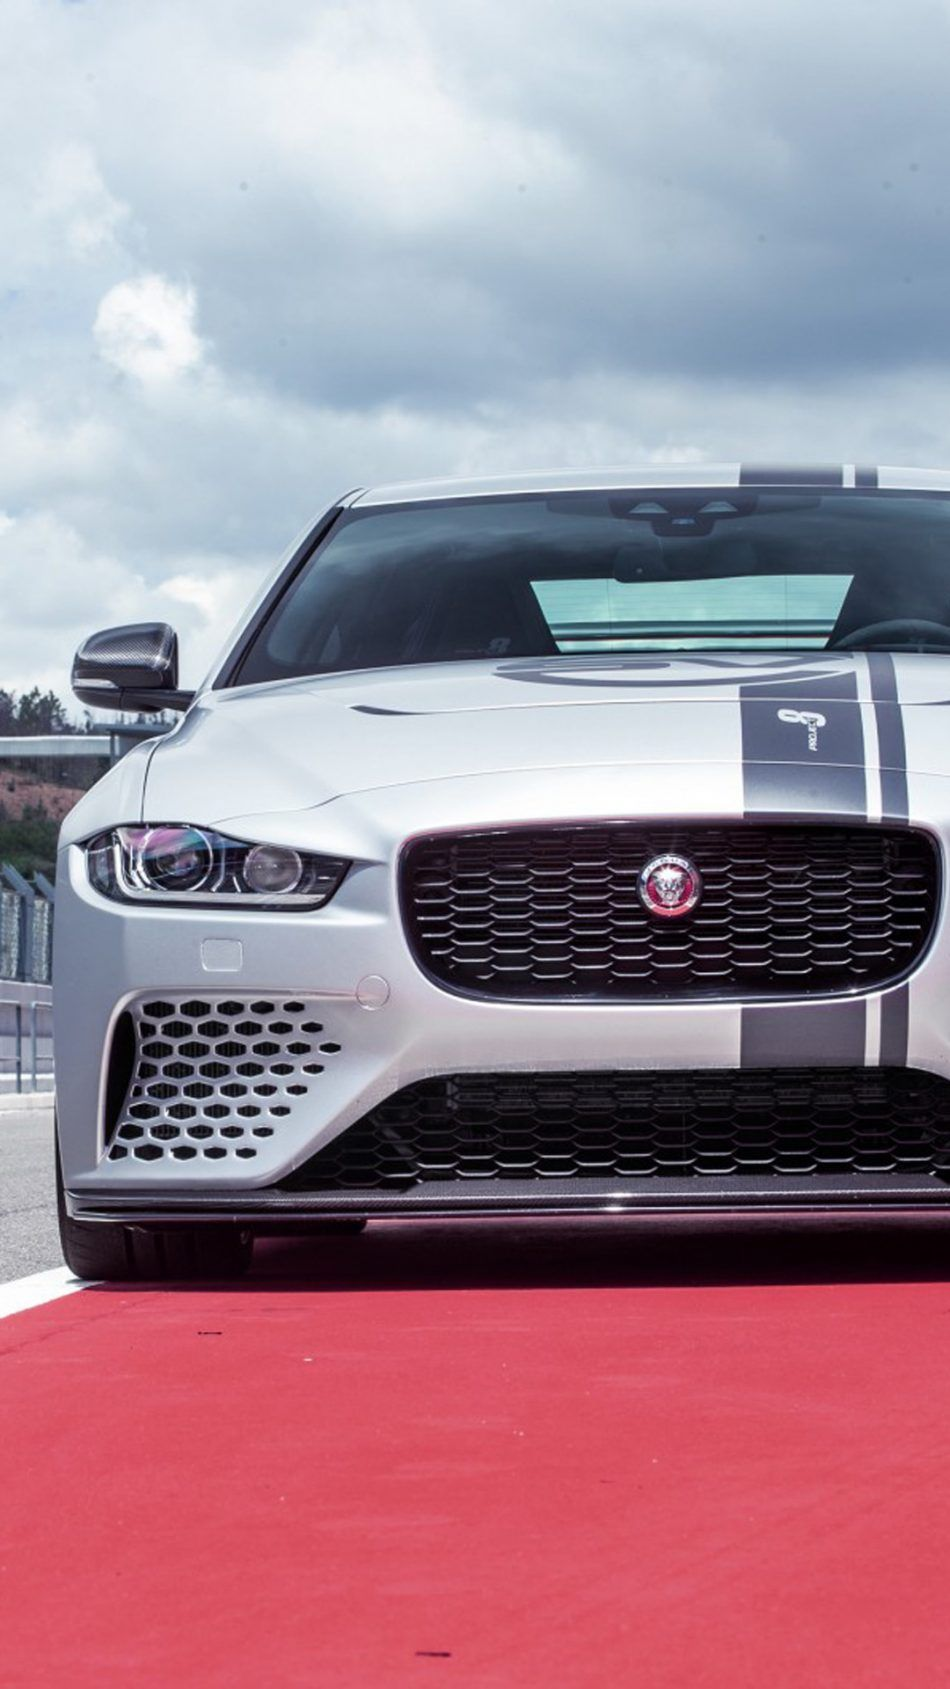 Jaguar Xe Sv Project 8 Car Wallpapers Jaguar Xe Jaguar Jaguar